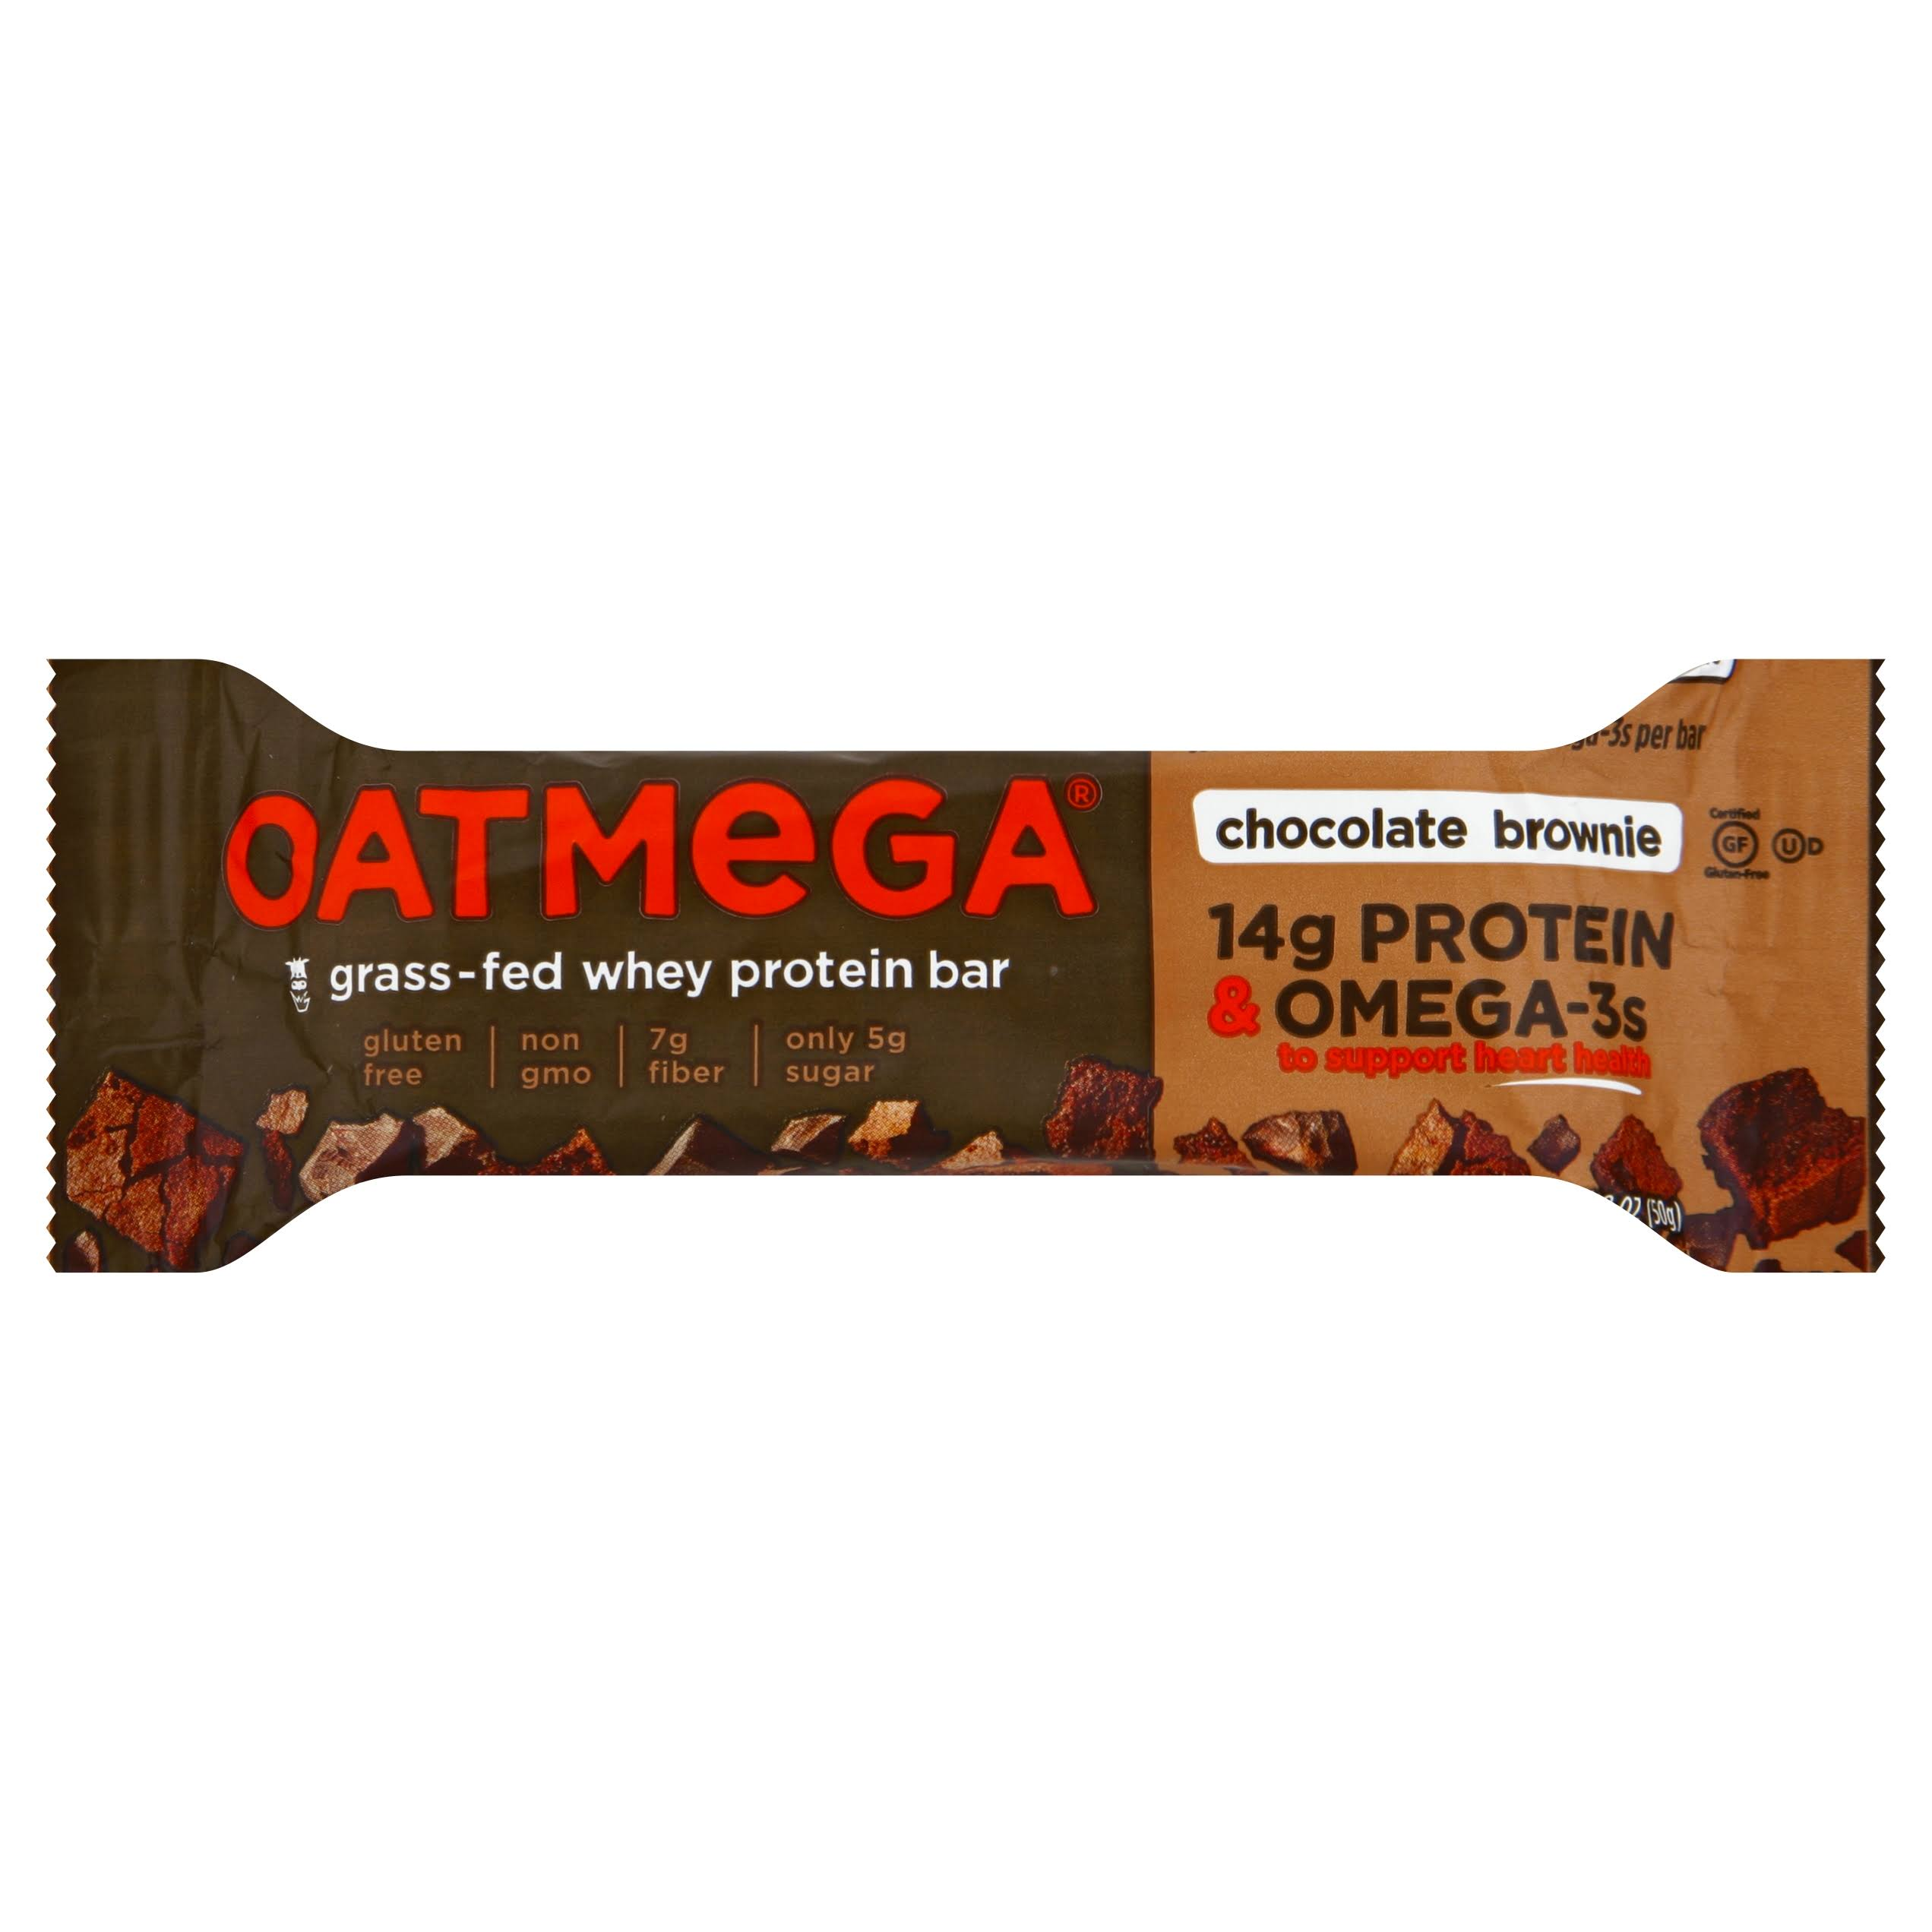 Oatmega Protein Bar, Chocolate Brownie - 1.8 oz